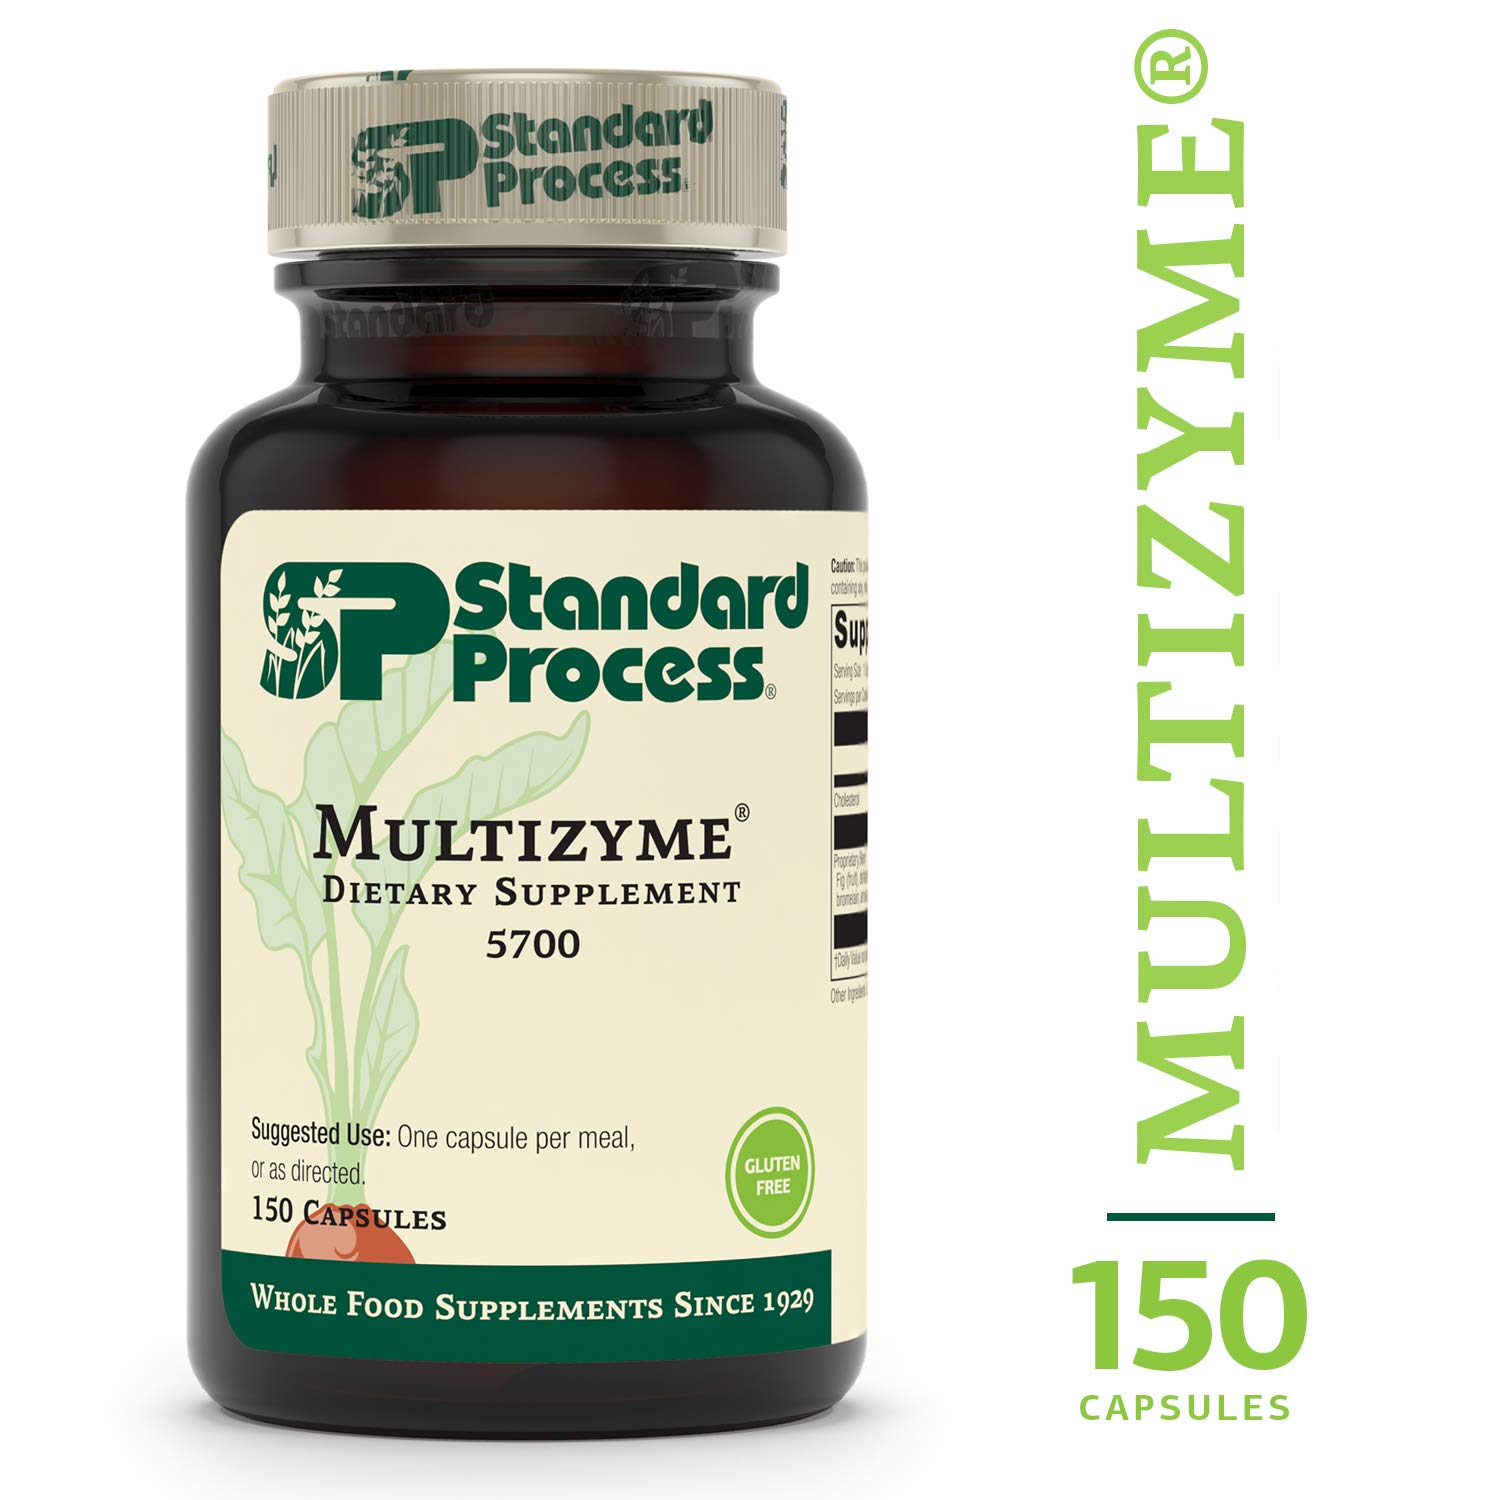 Standard Process - Multizyme - Digestion and Pancreatic Function Support Supplement, Provides Digestive Enzymes and Pancreatic Enzymes, Gluten Free - 150 Capsules by Standard Process